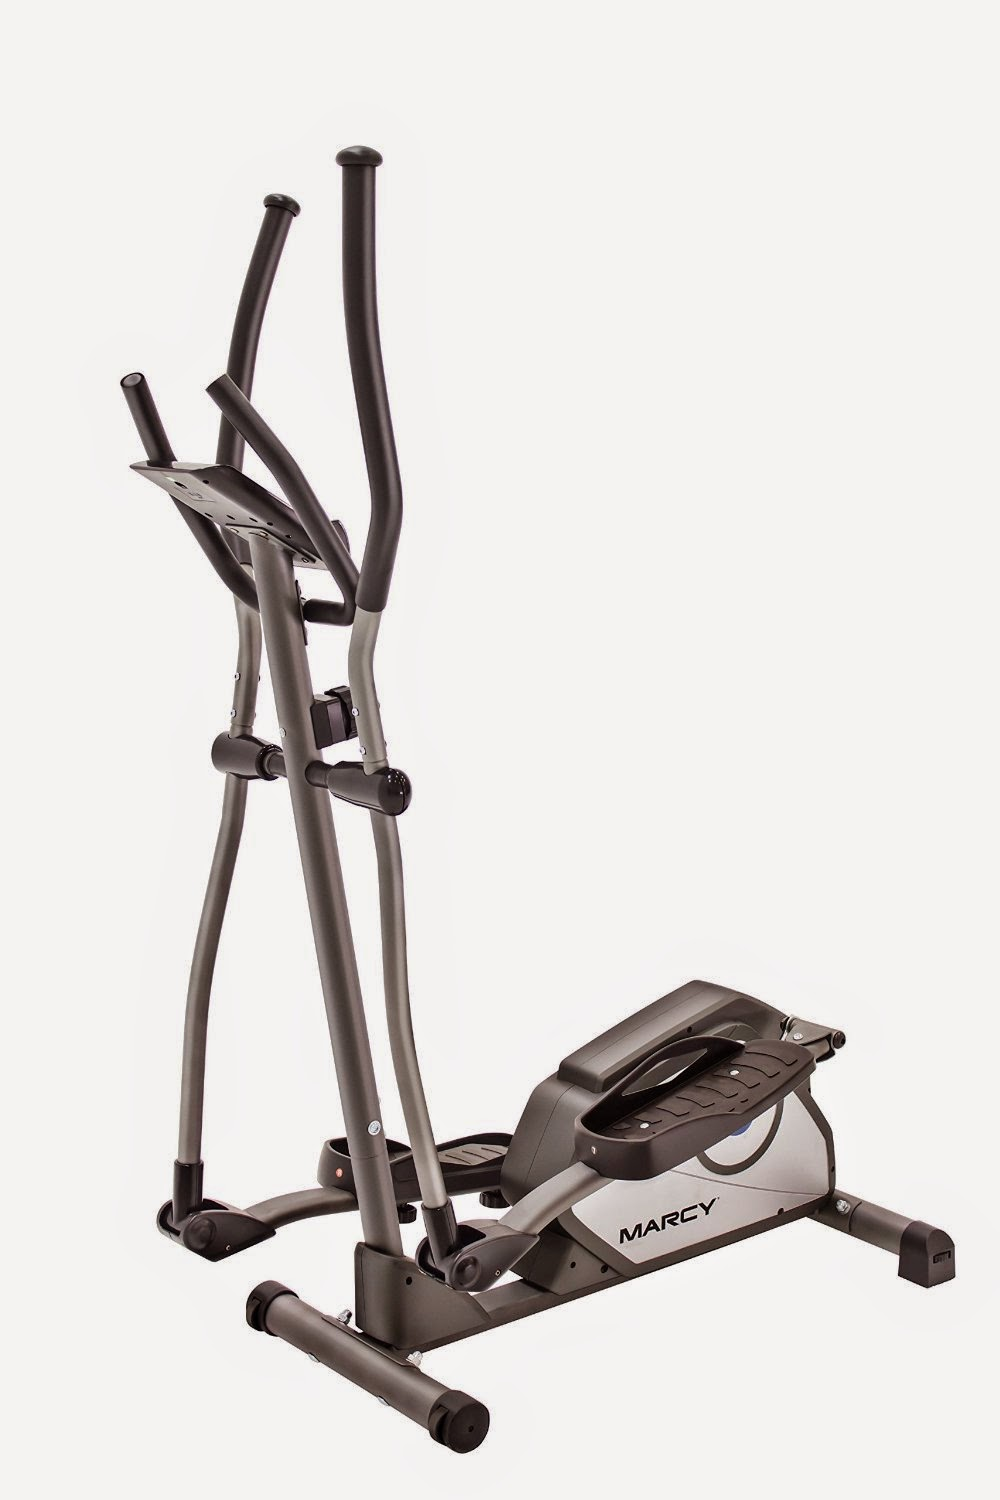 Marcy Marcy NS-40501E Elliptical Trainer, picture, image, review features and specifications